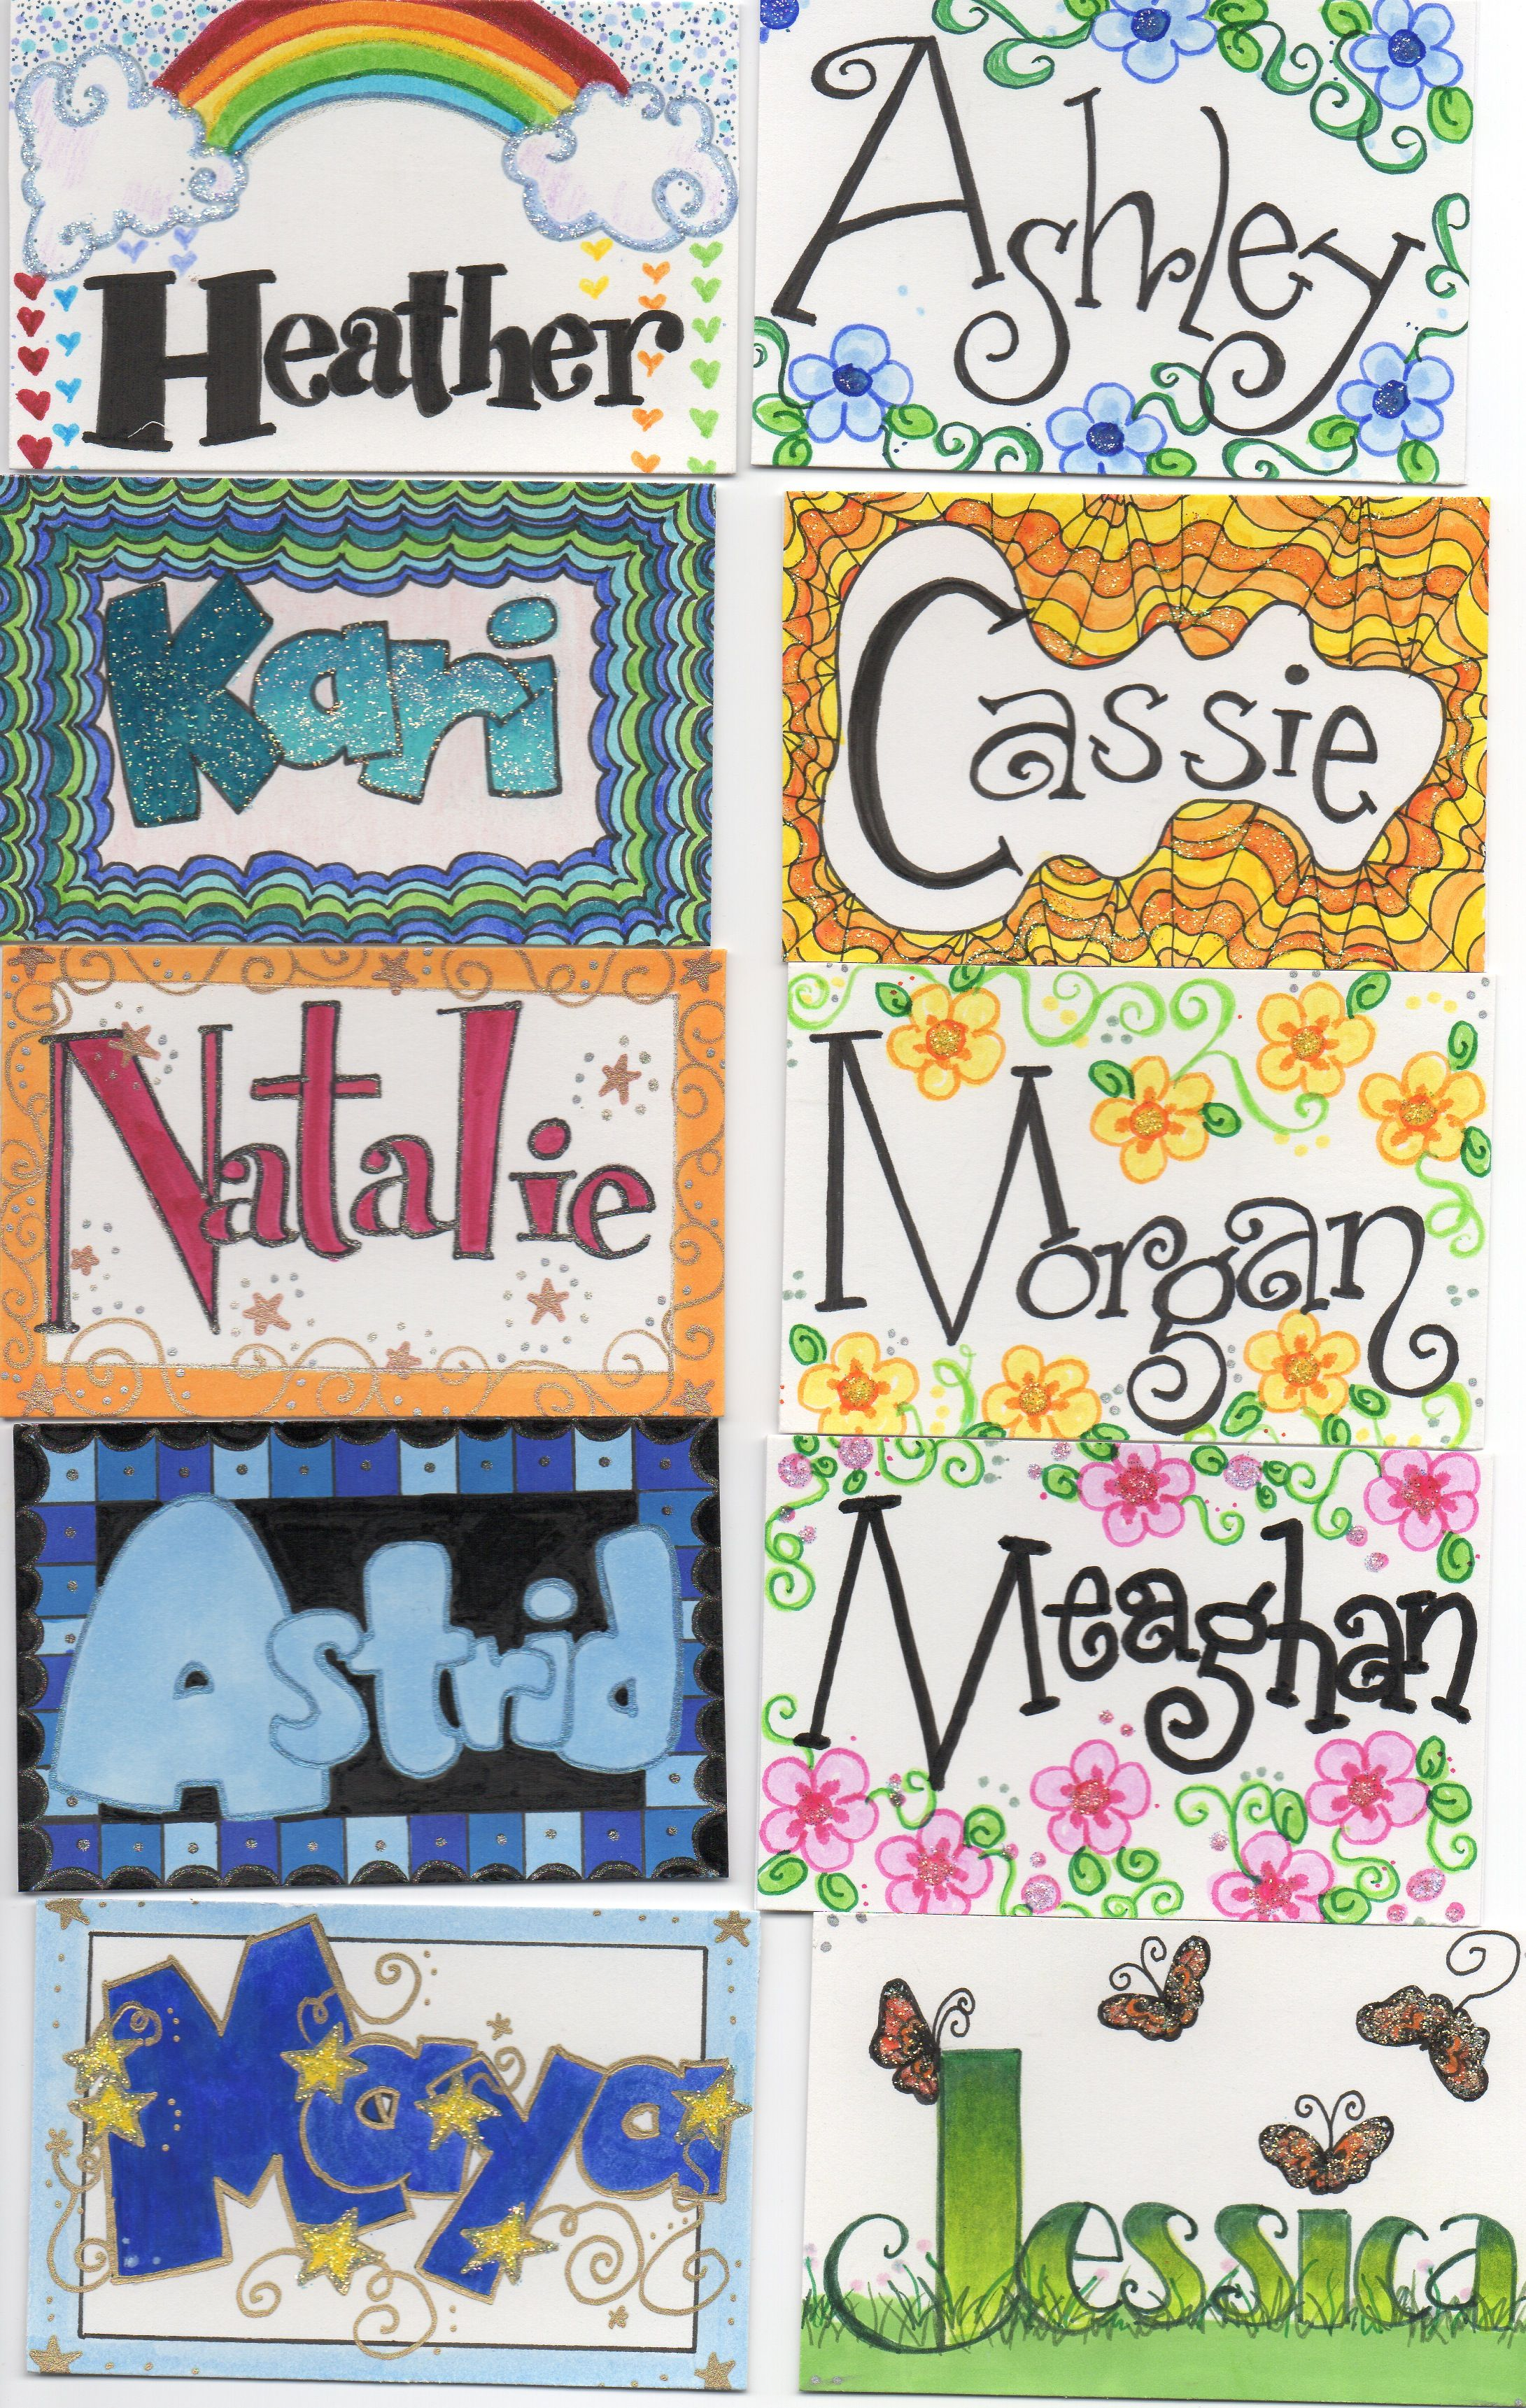 name tags i drew for kids i work with 2 dawn alice rogers my drawings pinterest school